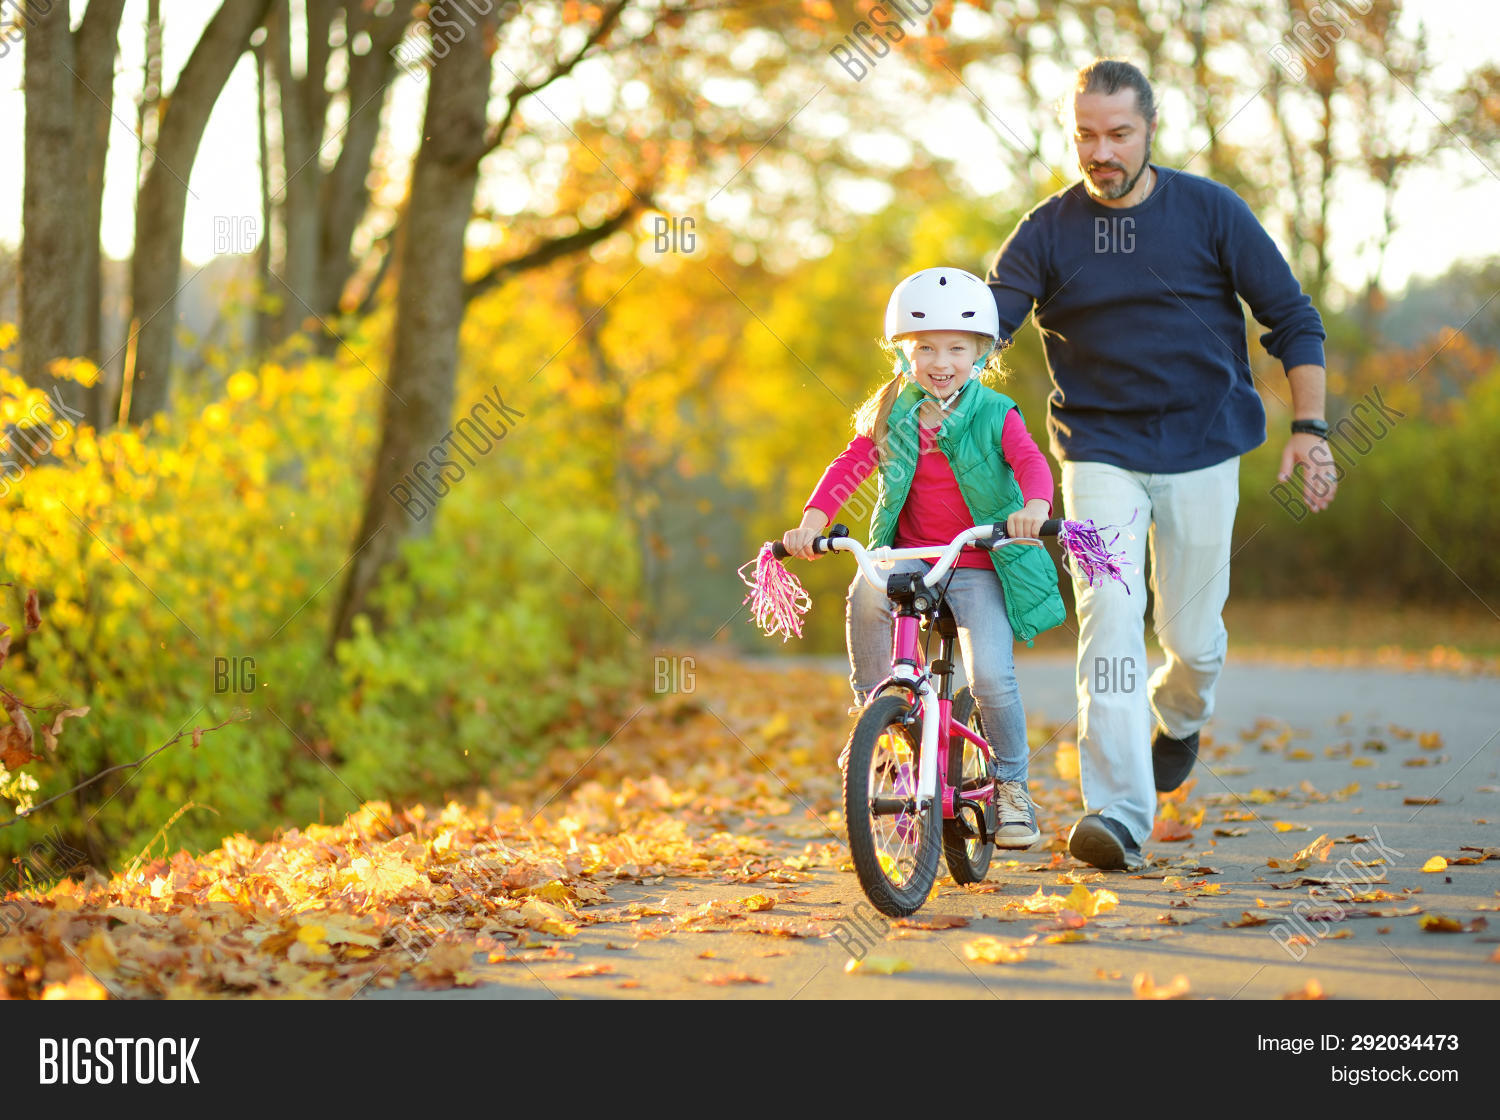 active,activity,adult,autumn,bicycle,bike,bonding,caucasian,child,city,cycle,cyclist,dad,daughter,day,enjoying,fall,family,father,foliage,girl,golden,helmet,help,joyful,kid,lane,leaf,learn,leisure,lifestyle,outdoors,parent,park,path,person,recreation,ride,road,safety,sports,street,teach,teacher,together,training,trust,wheels,yellow,young